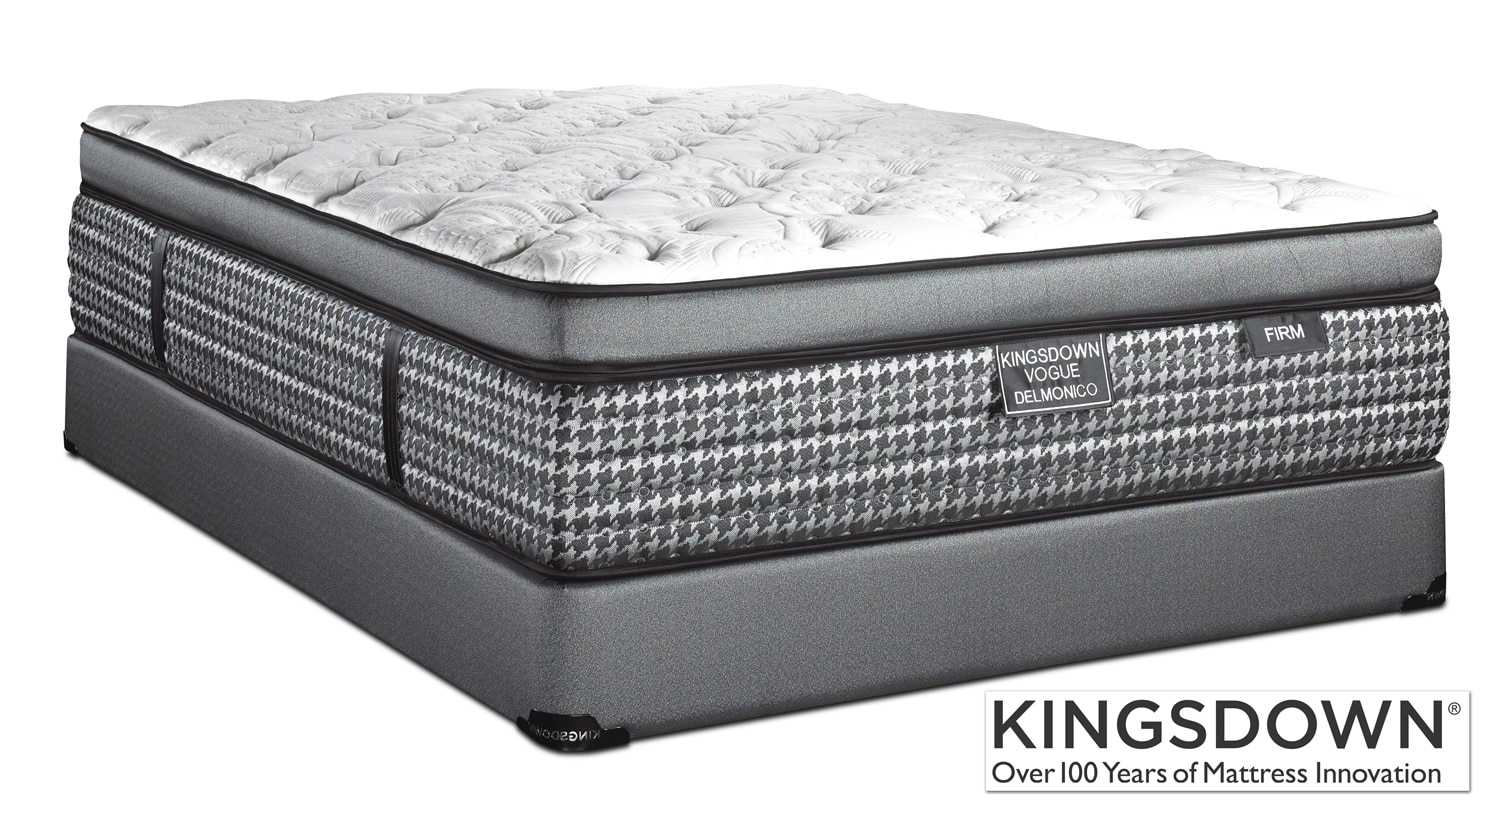 Kingsdown Delmonico Firm Queen Mattress/Boxspring Set